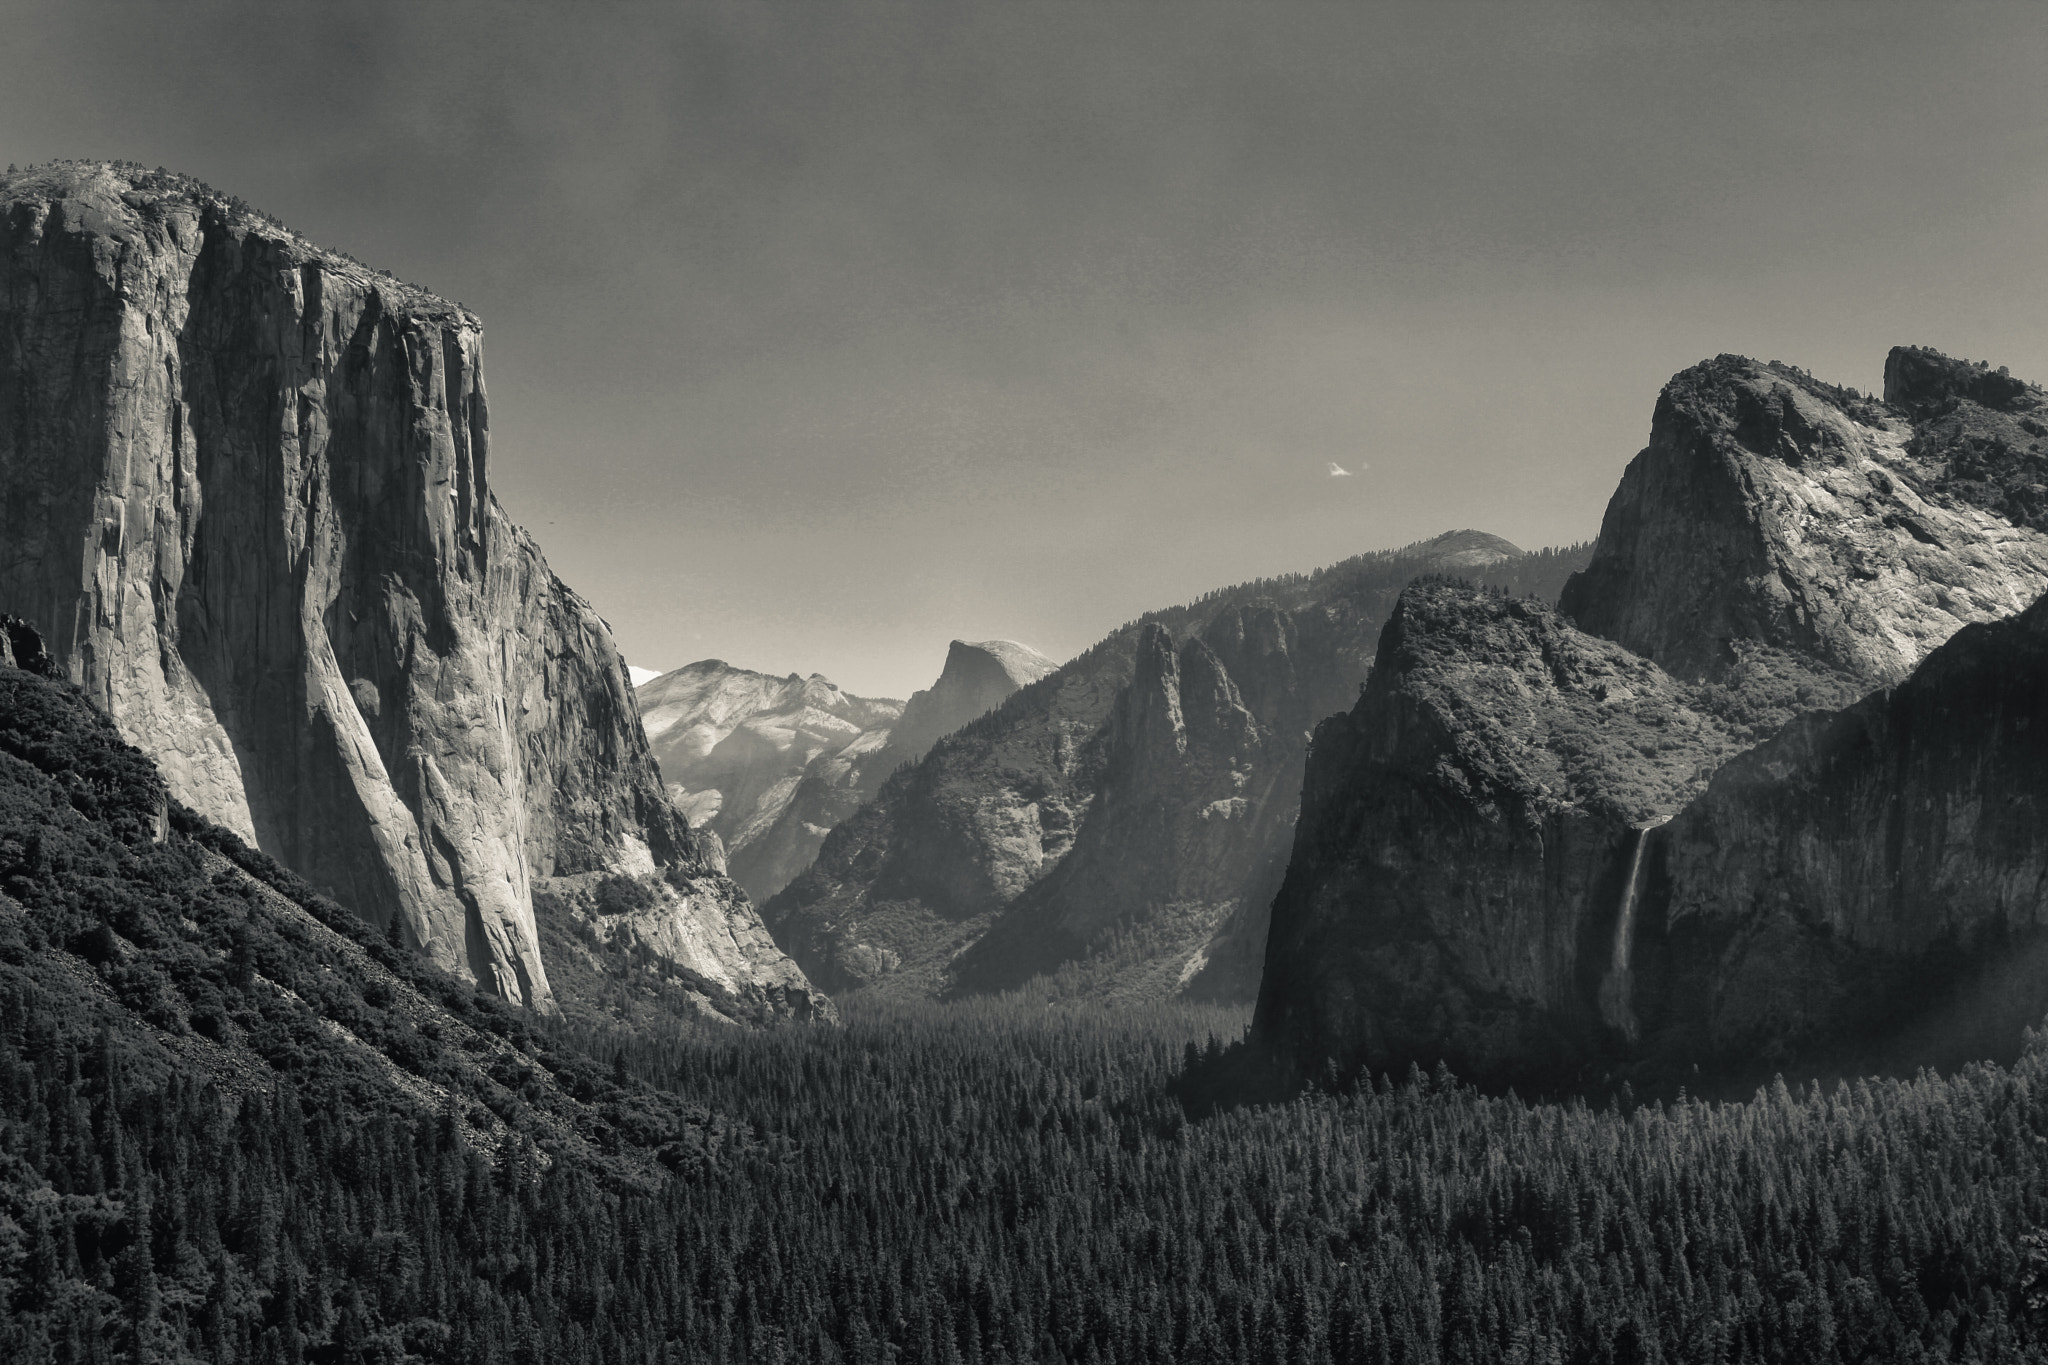 Photograph Yosemite Valley by Björn Borgers on 500px